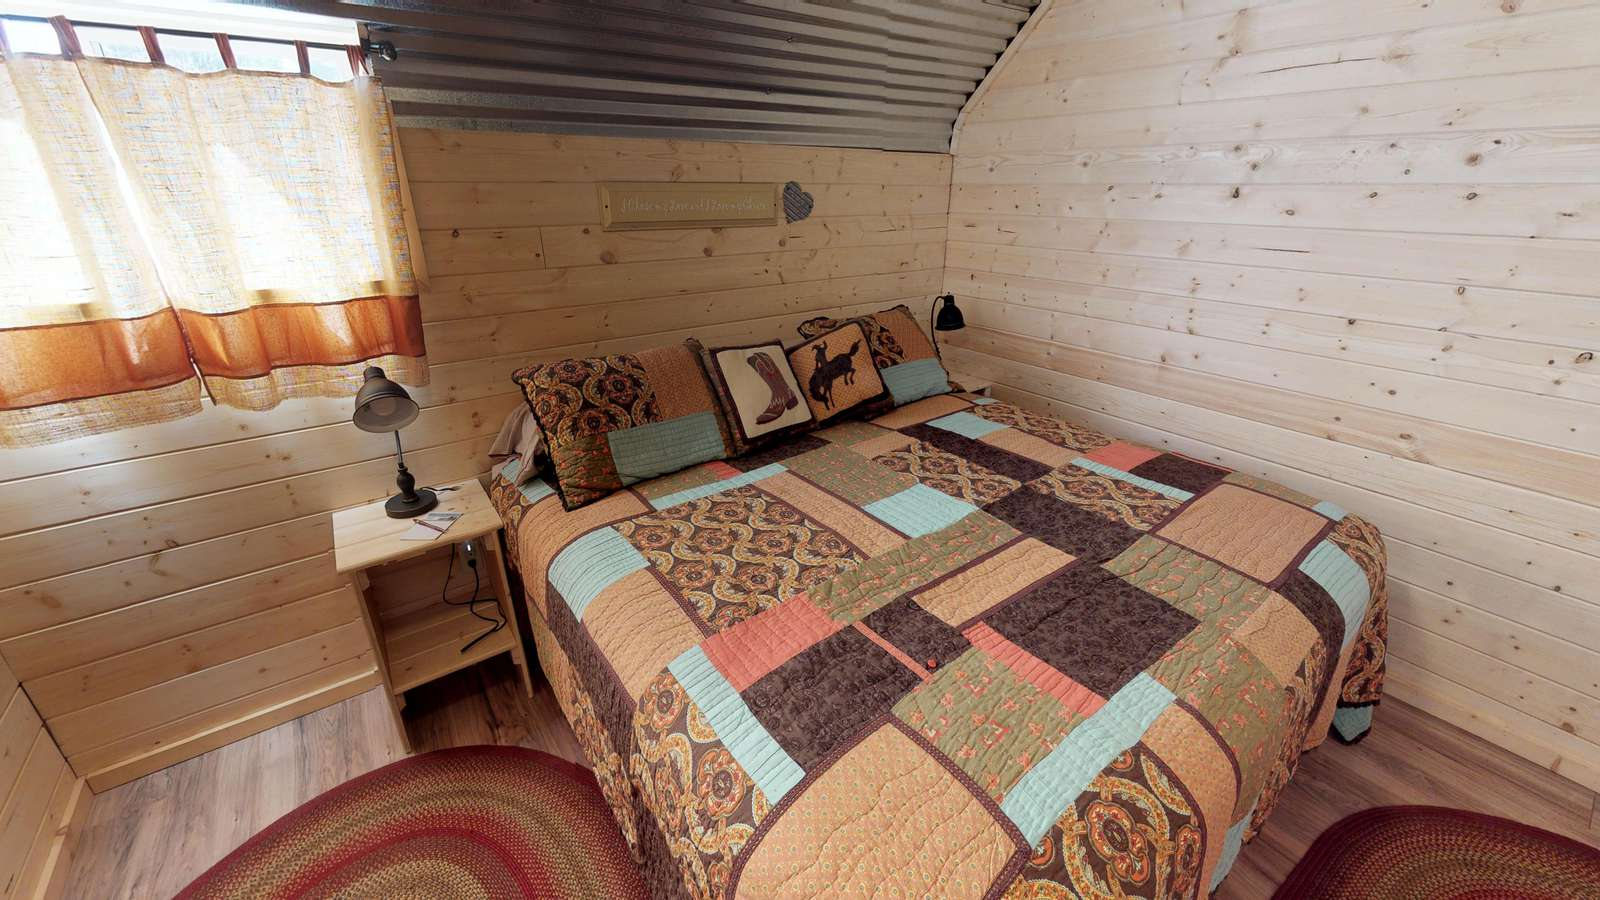 Western Horse Barn Cabin Rooms With Loft, Full Kitchen, Dining Area For  Large Groups